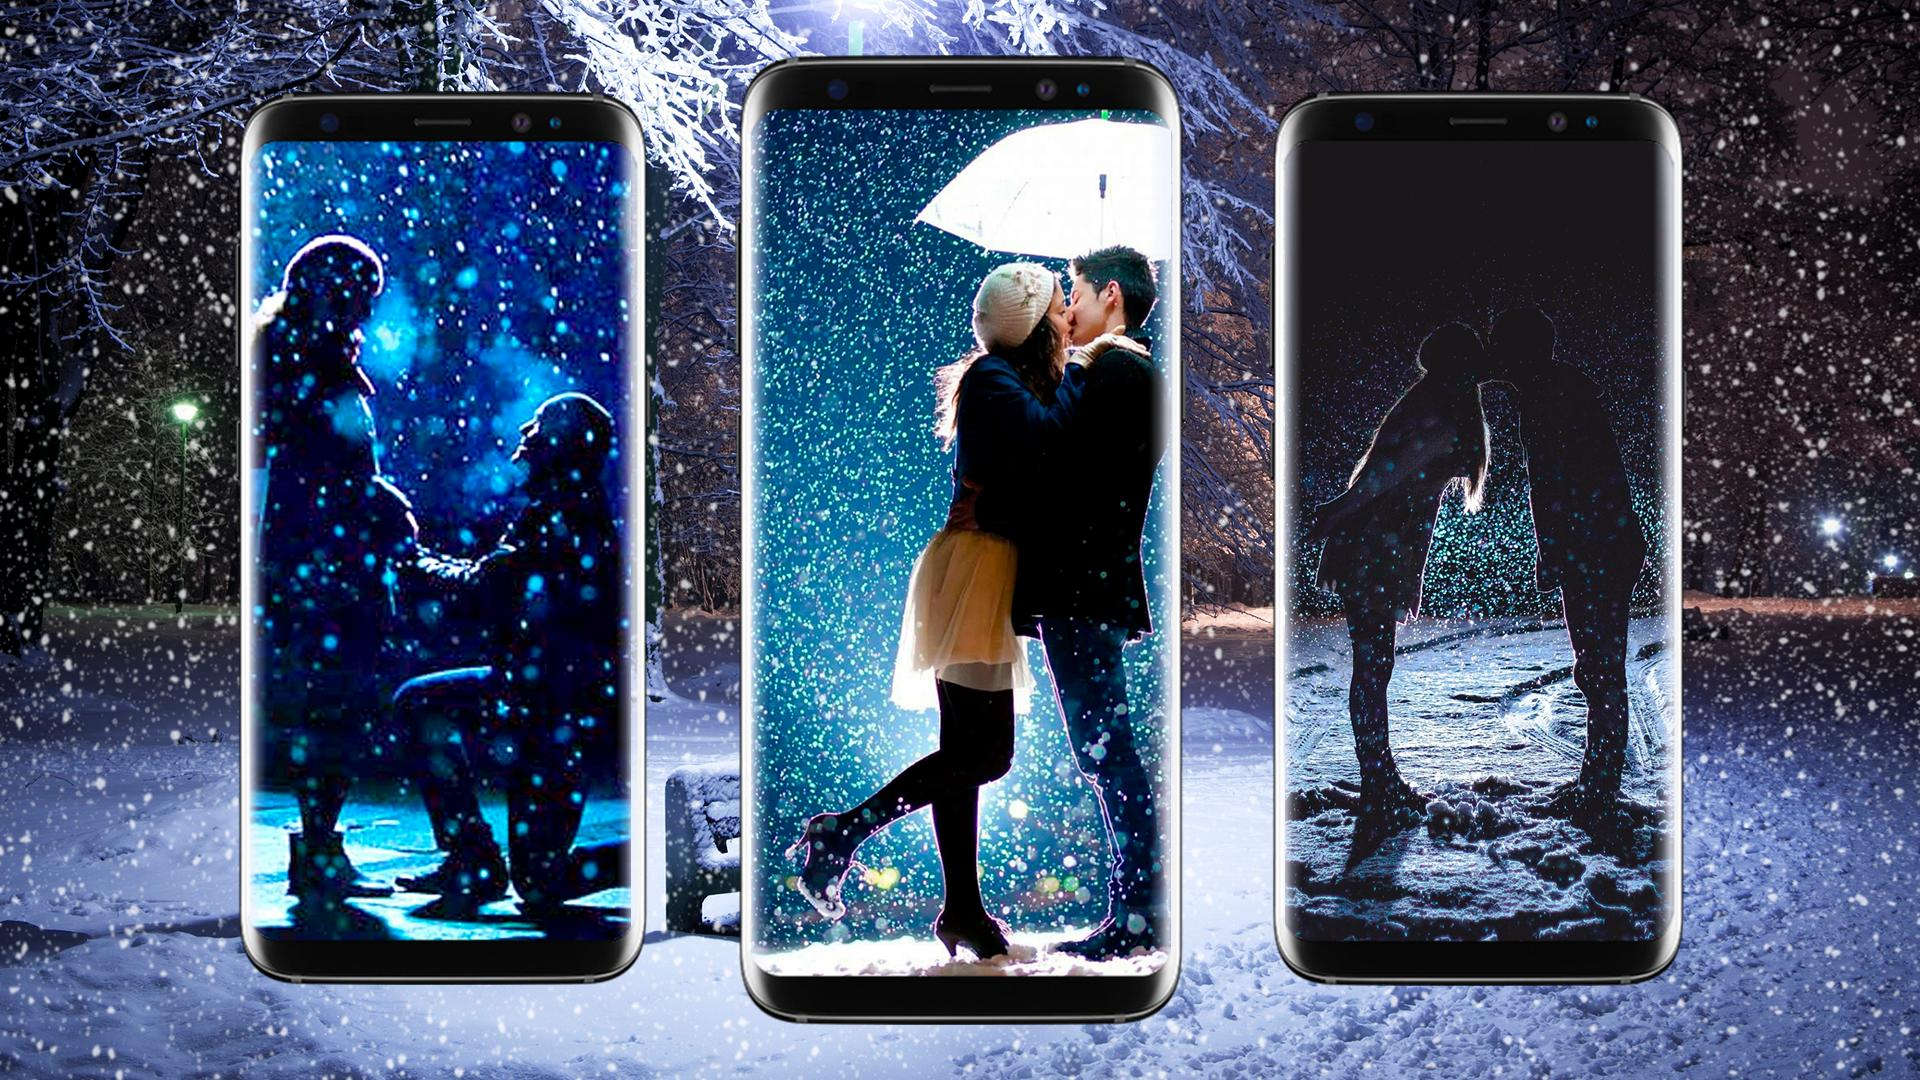 80 Koleksi Romantic Couple Mobile Wallpaper Gratis Terbaik